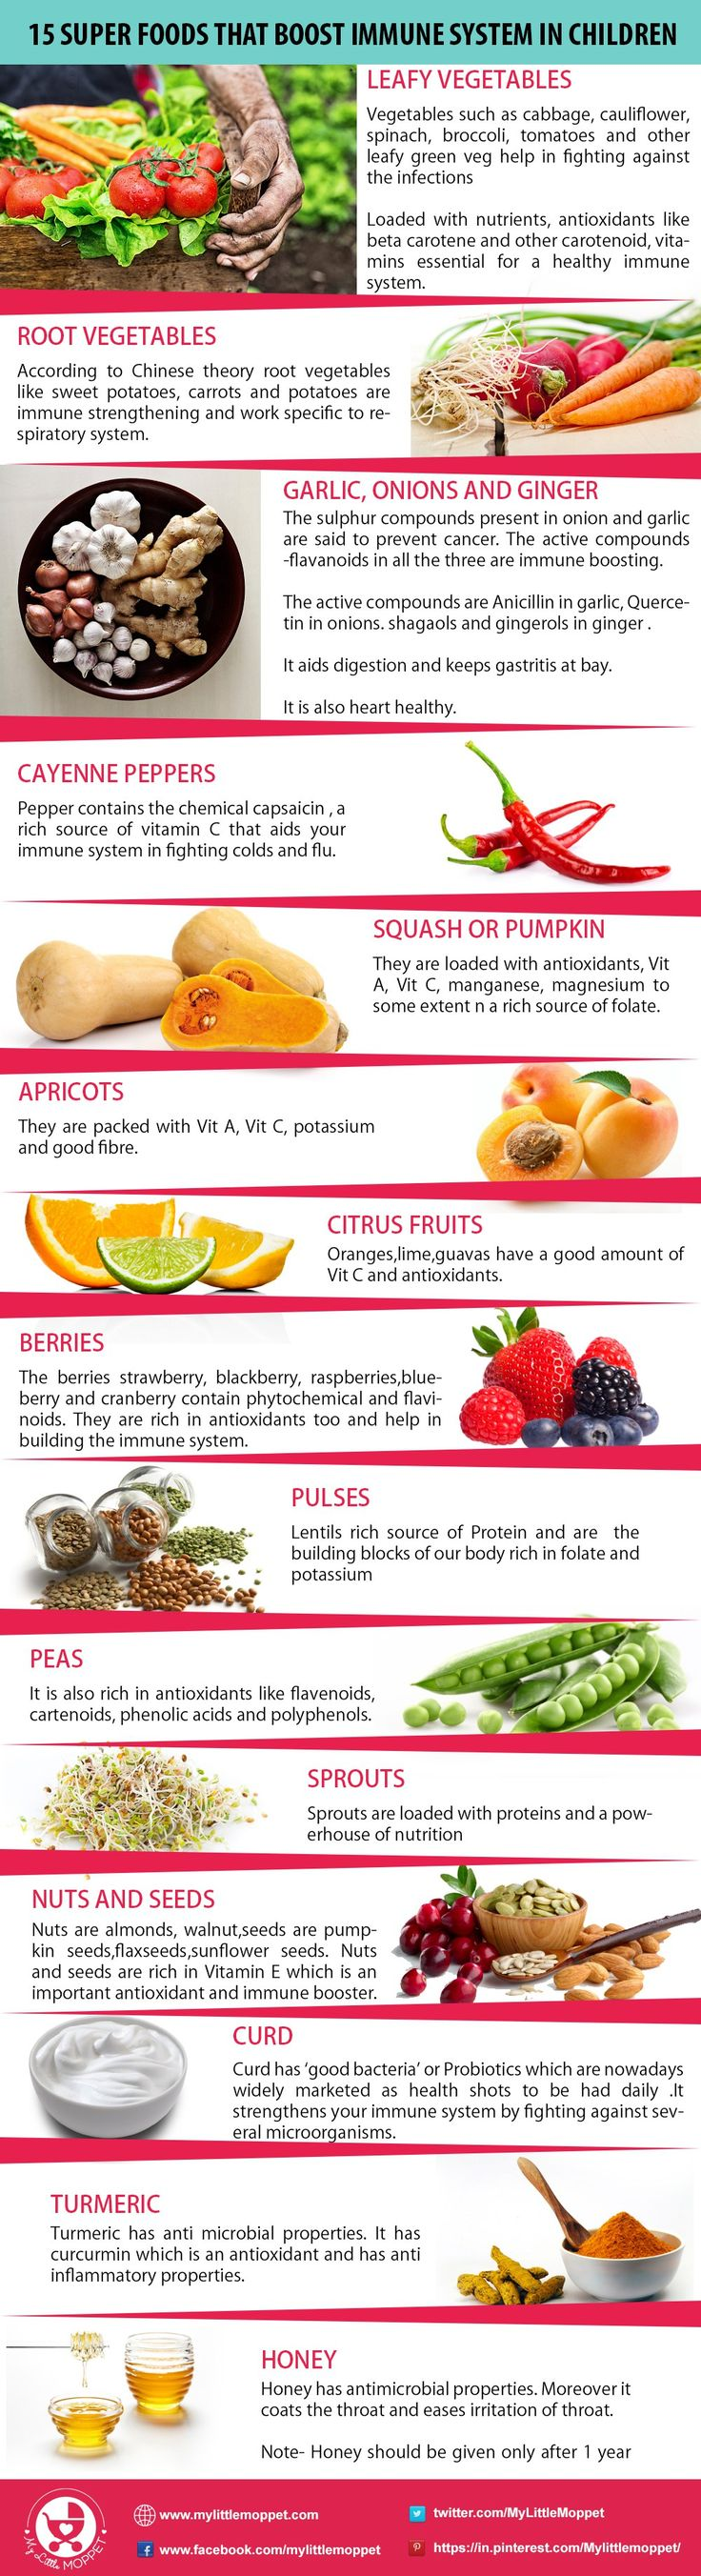 15-Super-Foods-that-Boost